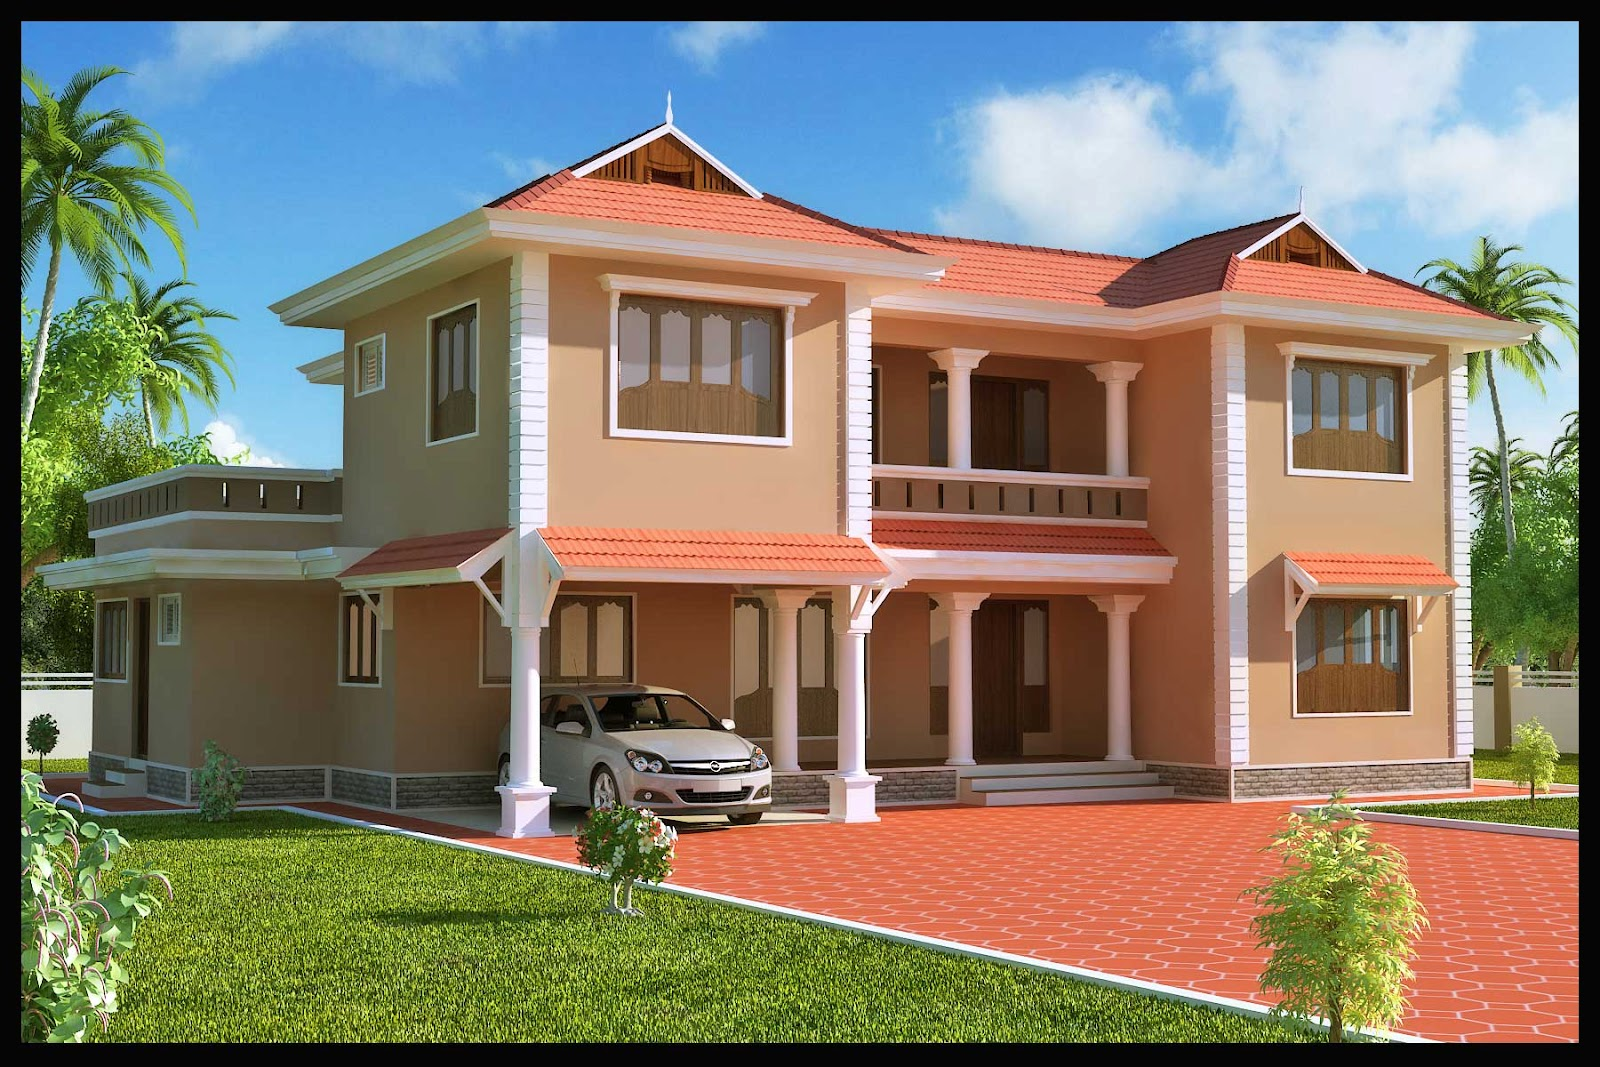 Kerala building construction 4 bhk villa for Home exterior design india